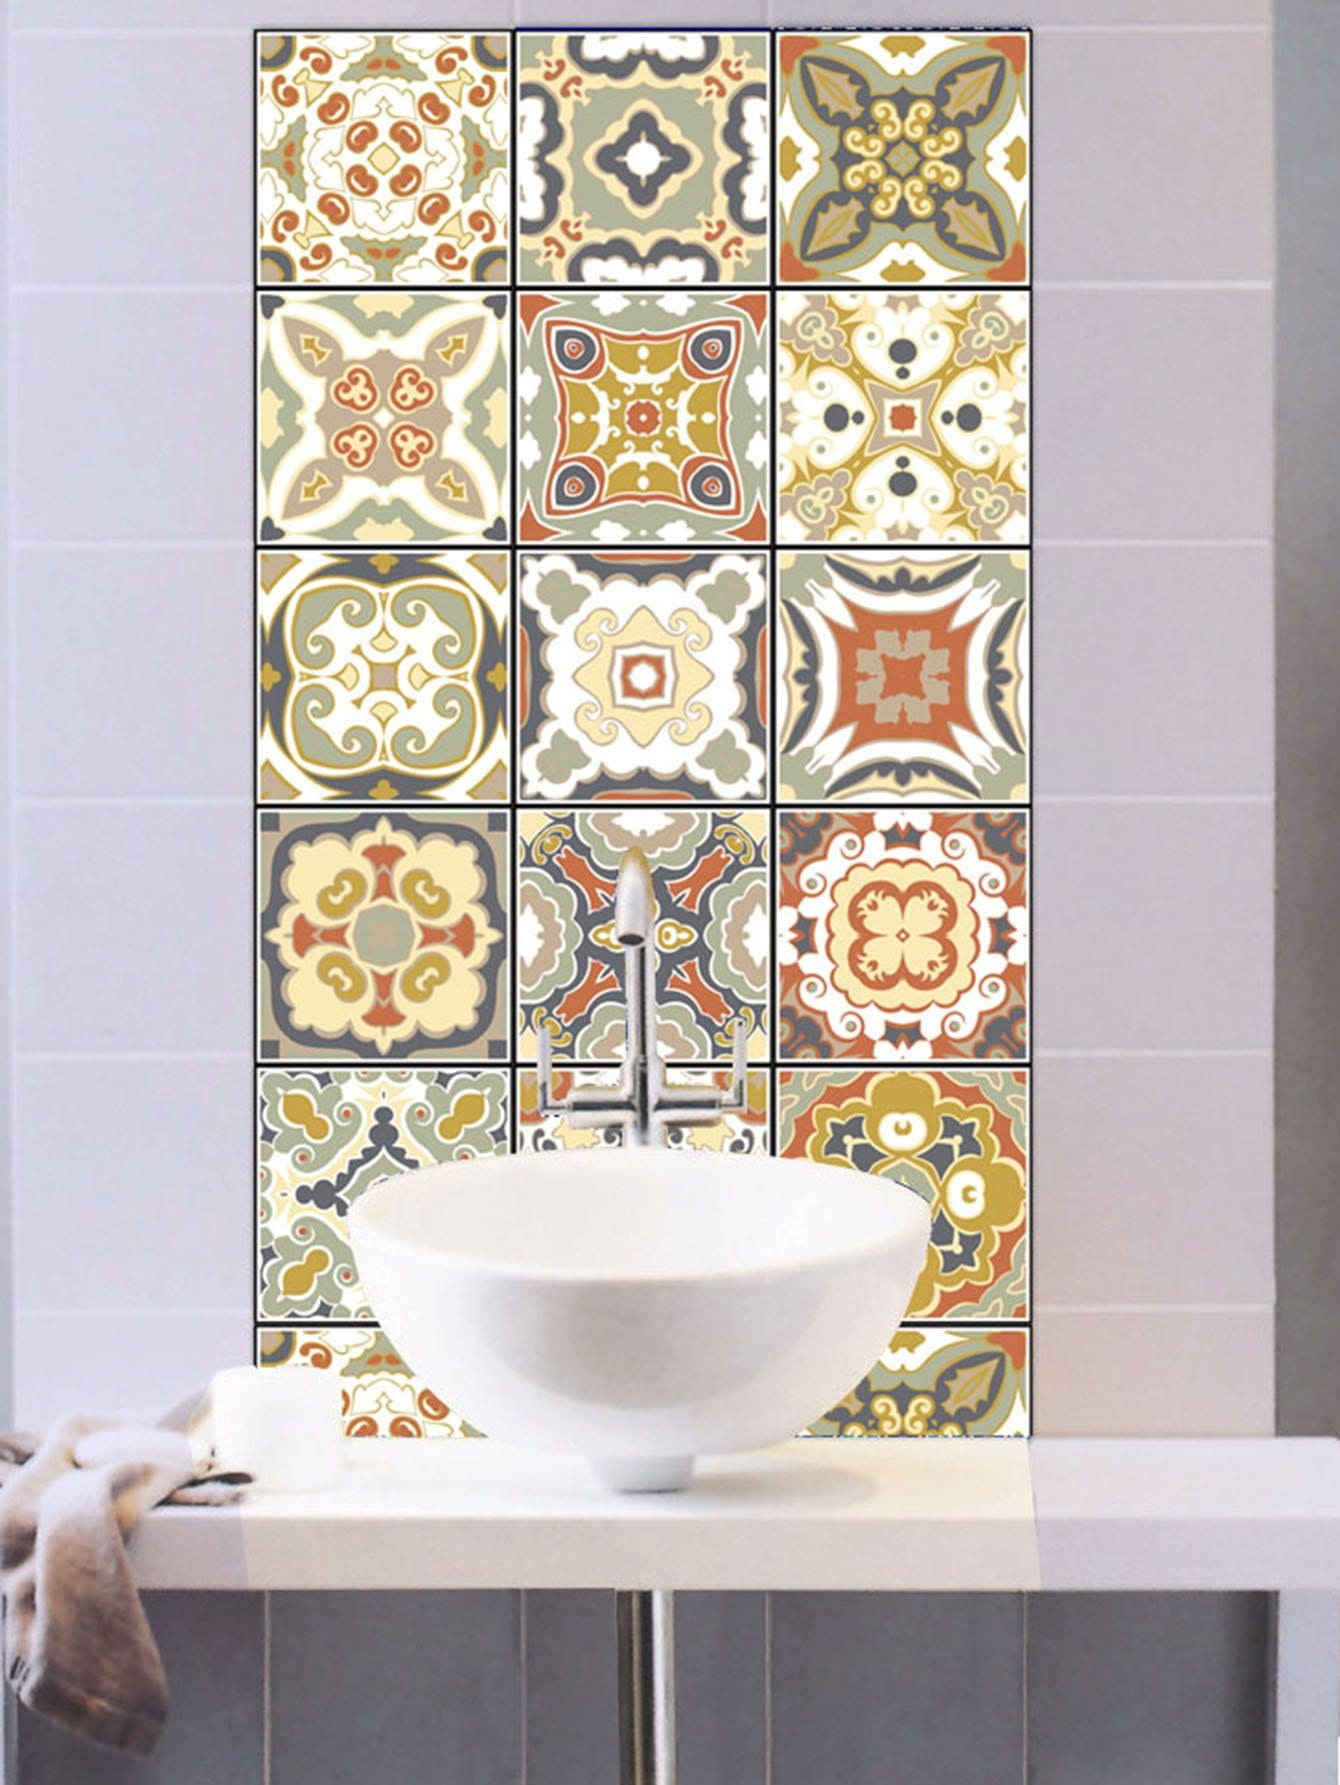 Random Symmetrical Pattern Ceramic Tile Sticker 1pc random stone spliced ceramic tile sticker 1pc